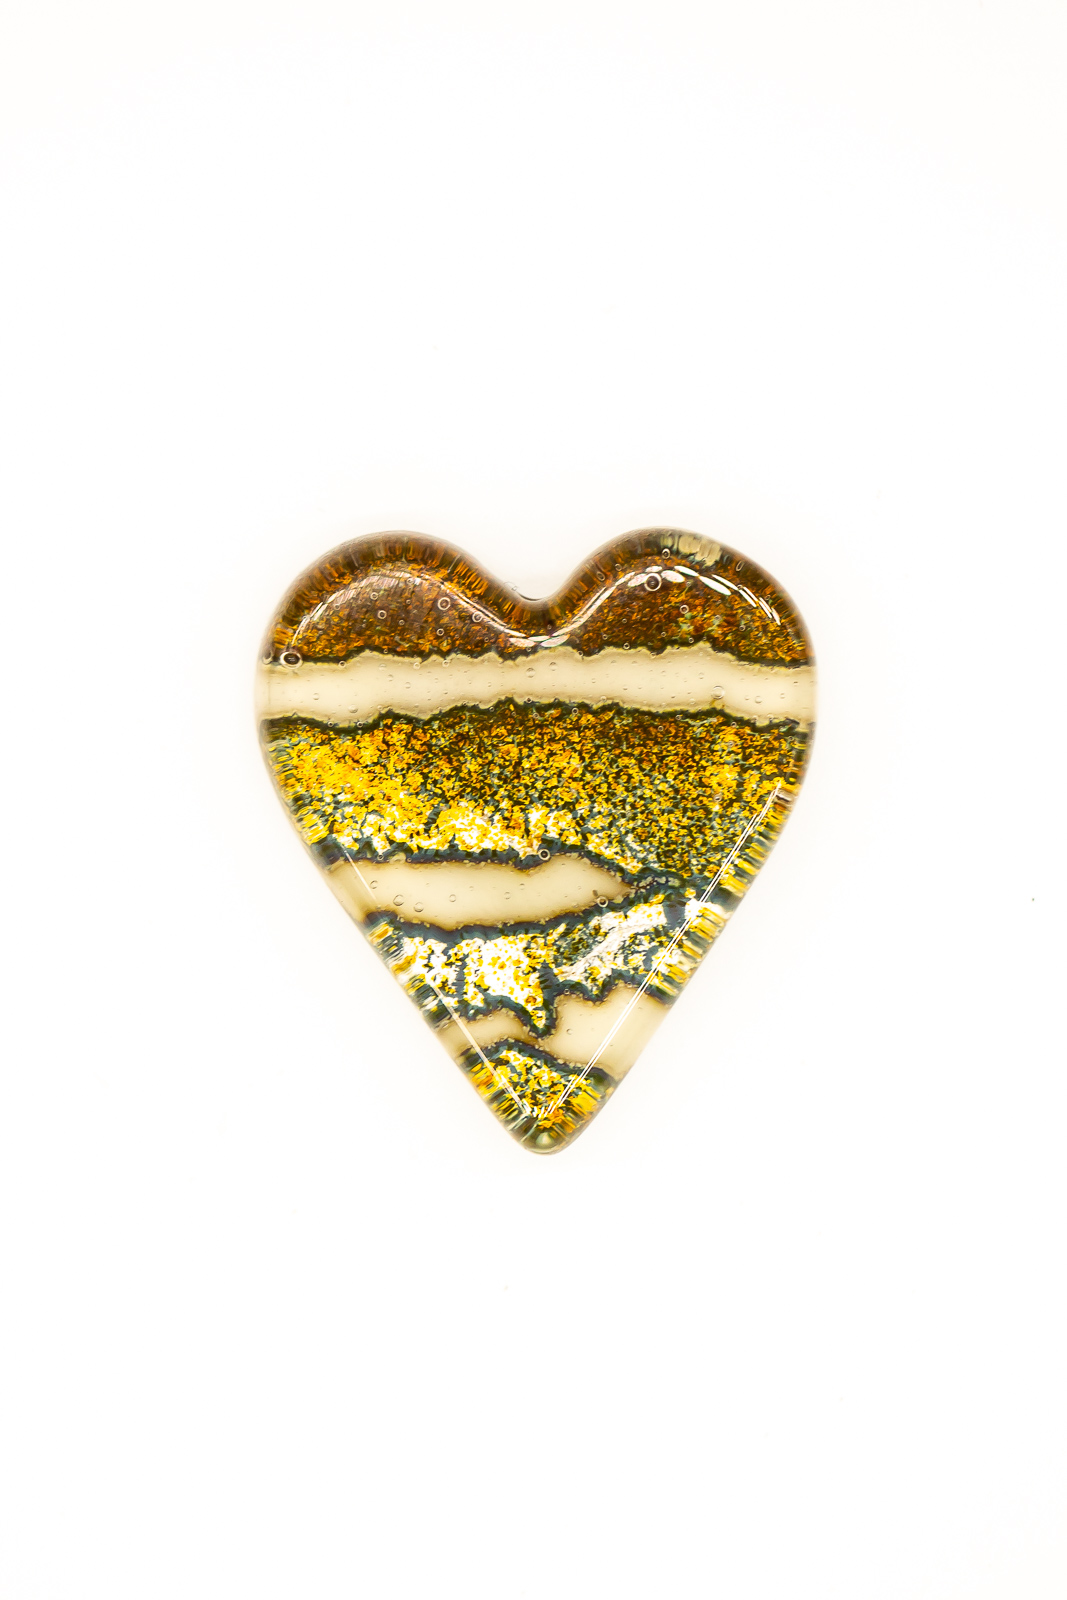 Lucie Harris Glass, fused glass heart shaped jewellery ideal for valentines gift